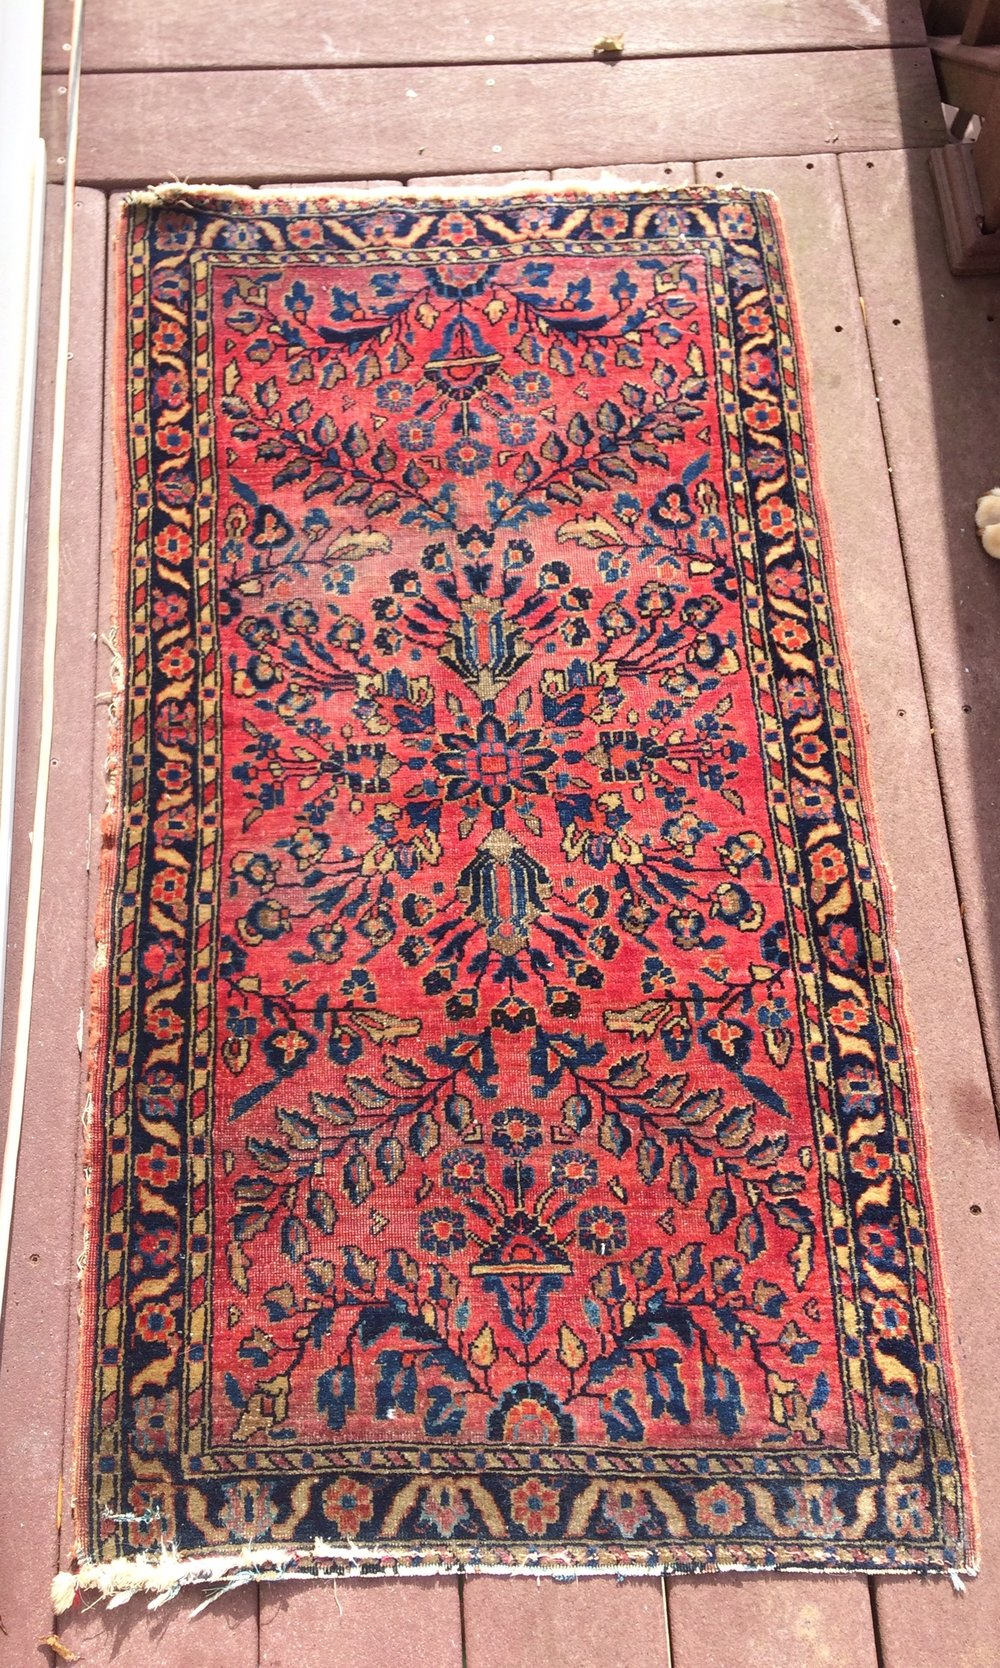 Just listed! https://www.etsy.com/listing/541370161/on-sale-antique-persian-hand-knotted